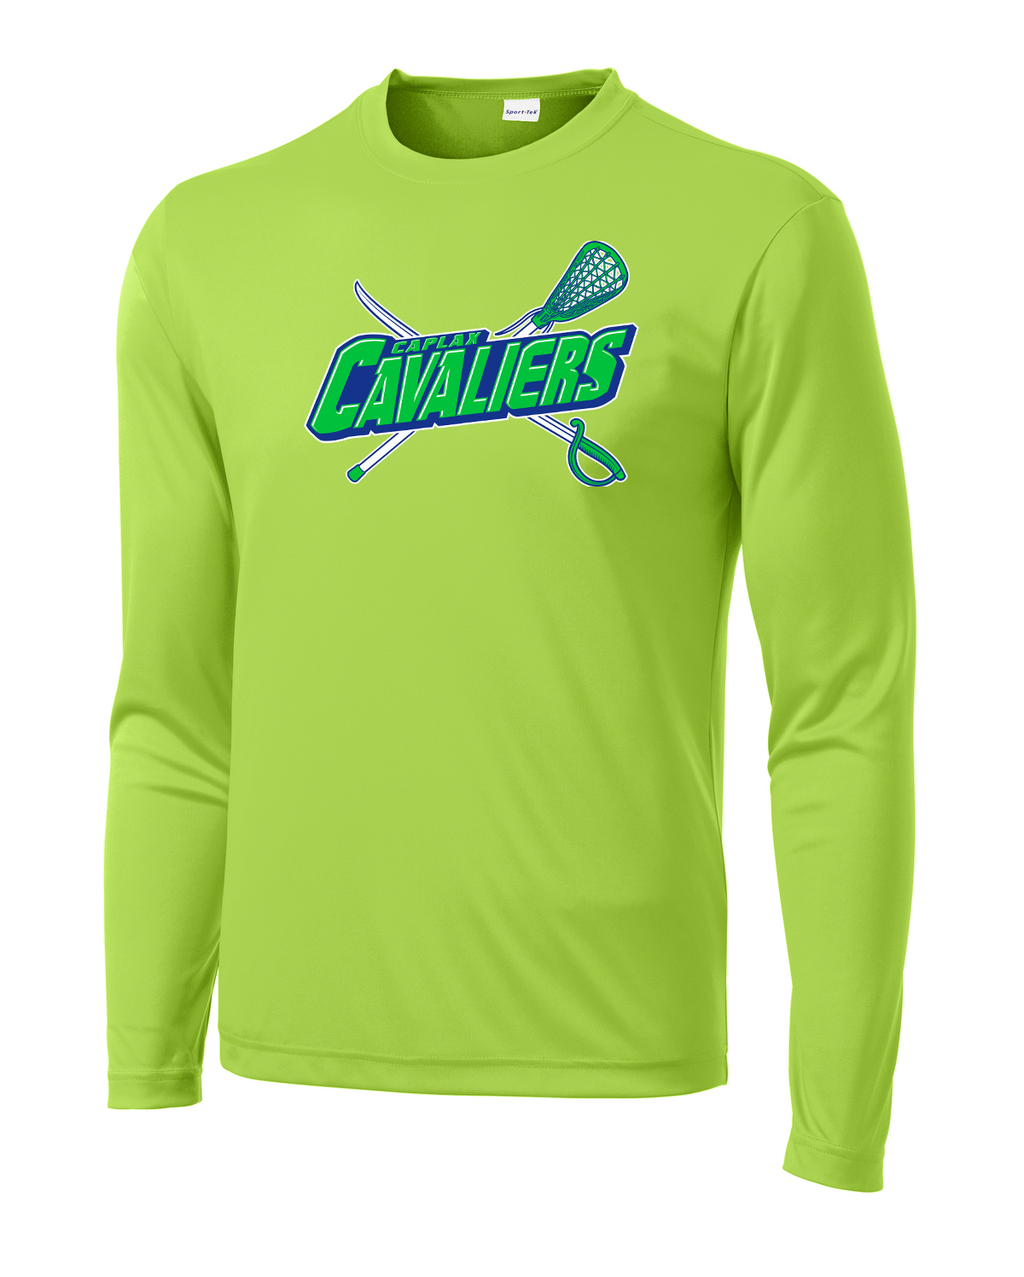 Cavaliers Lacrosse Long Sleeve Performance Shirt